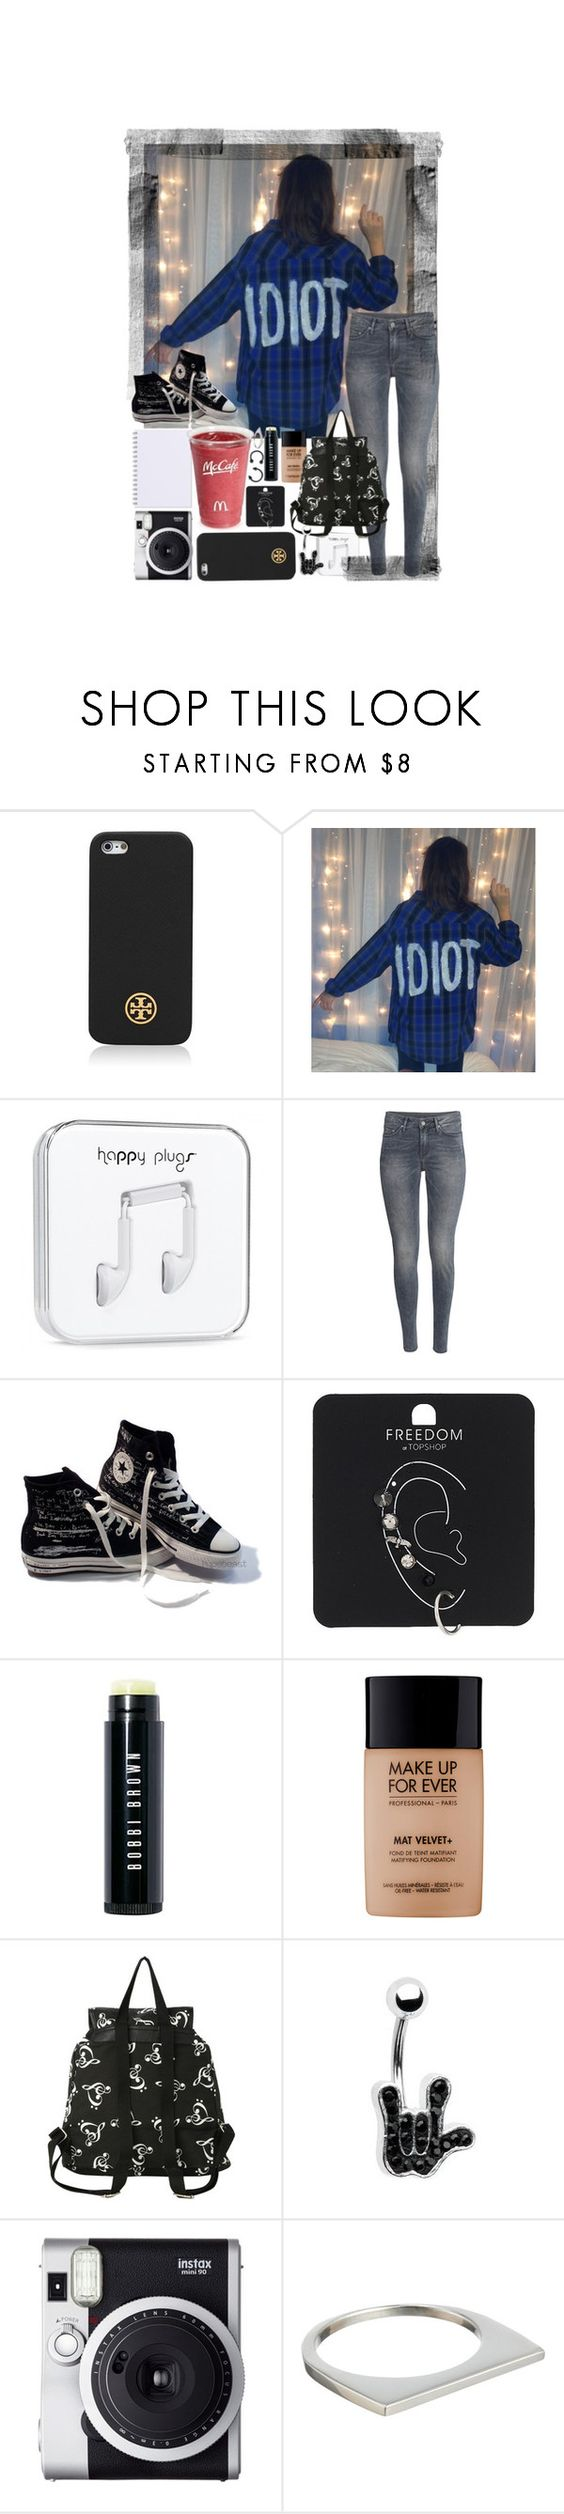 """Take a piece of my heart, and make it all your own. So when we're apart you'll never be alone."" by directioner-16-17 ❤ liked on Polyvore featuring Tory Burch, H&M, Converse, Topshop, Bobbi Brown Cosmetics, MAKE UP FOR EVER, Fuji and Loren Stewart"